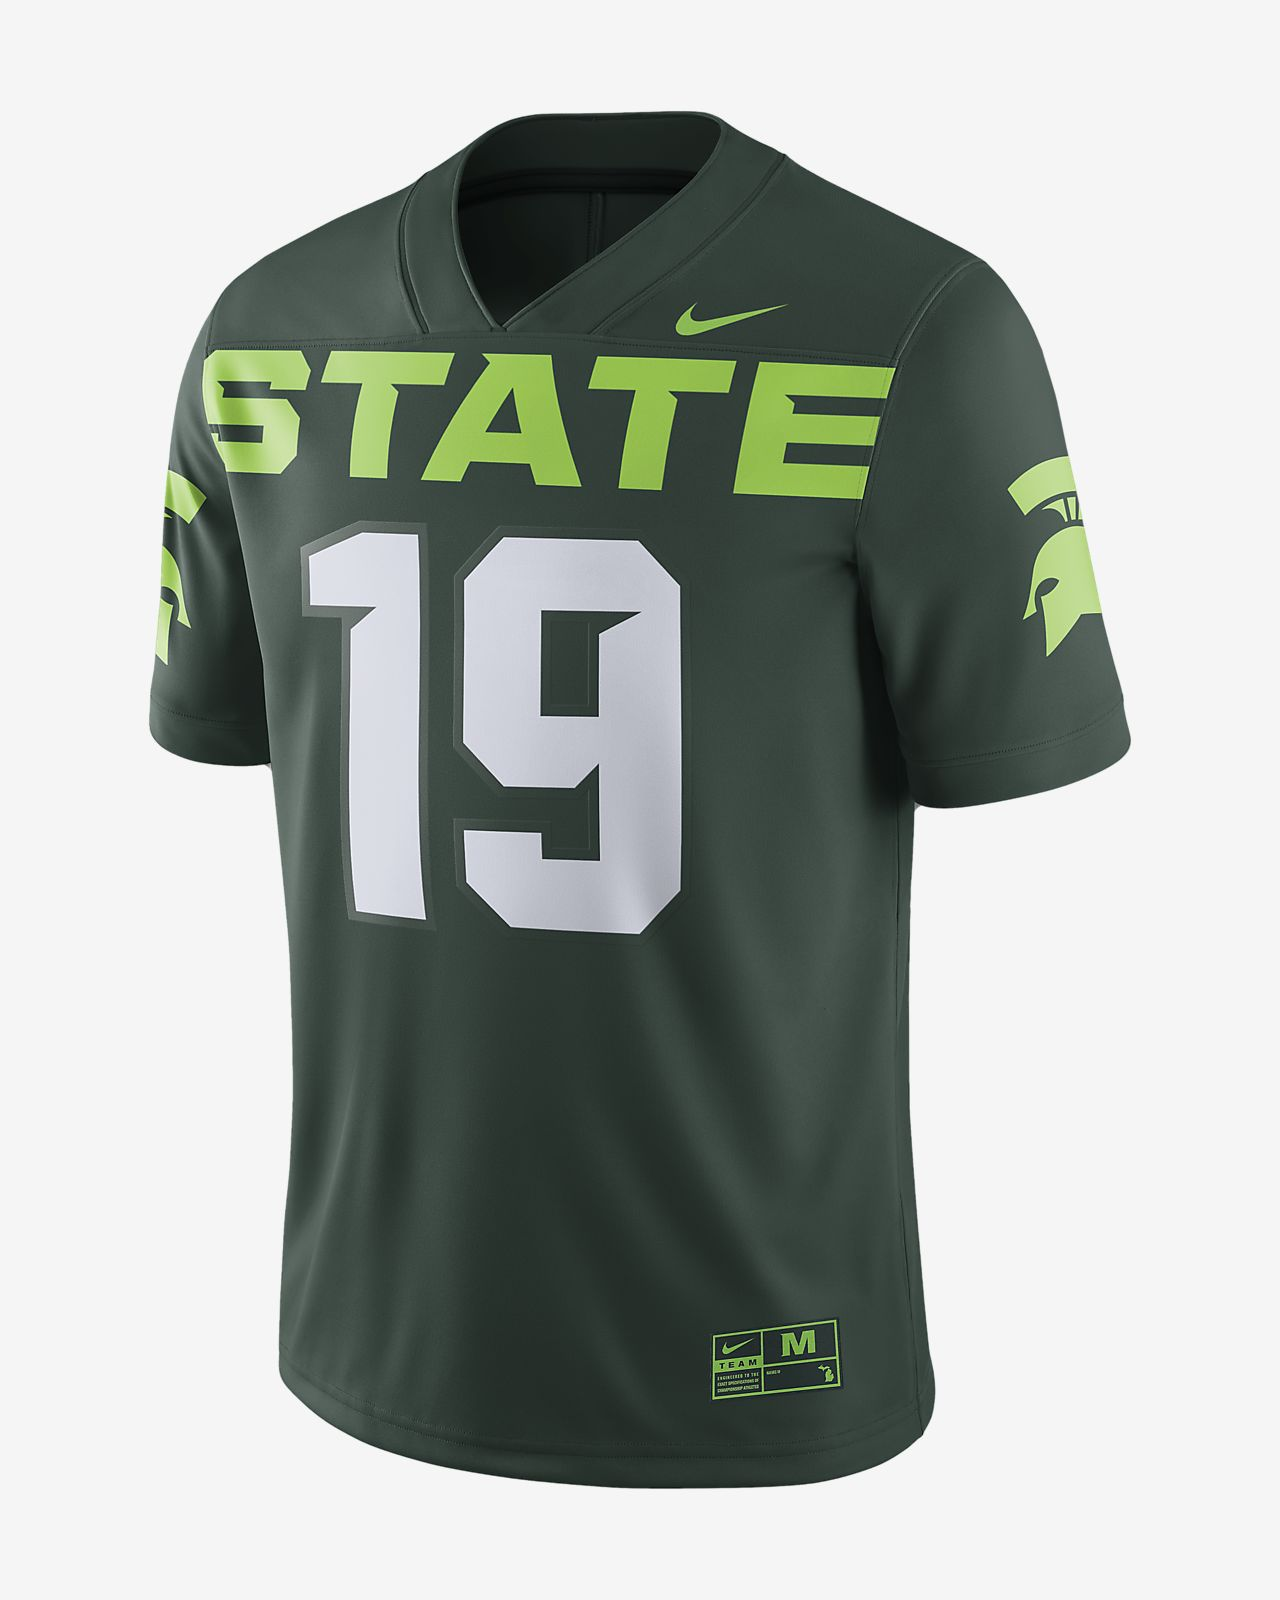 buy online 31986 e50d8 Nike College Game (Michigan State) Men's Football Jersey